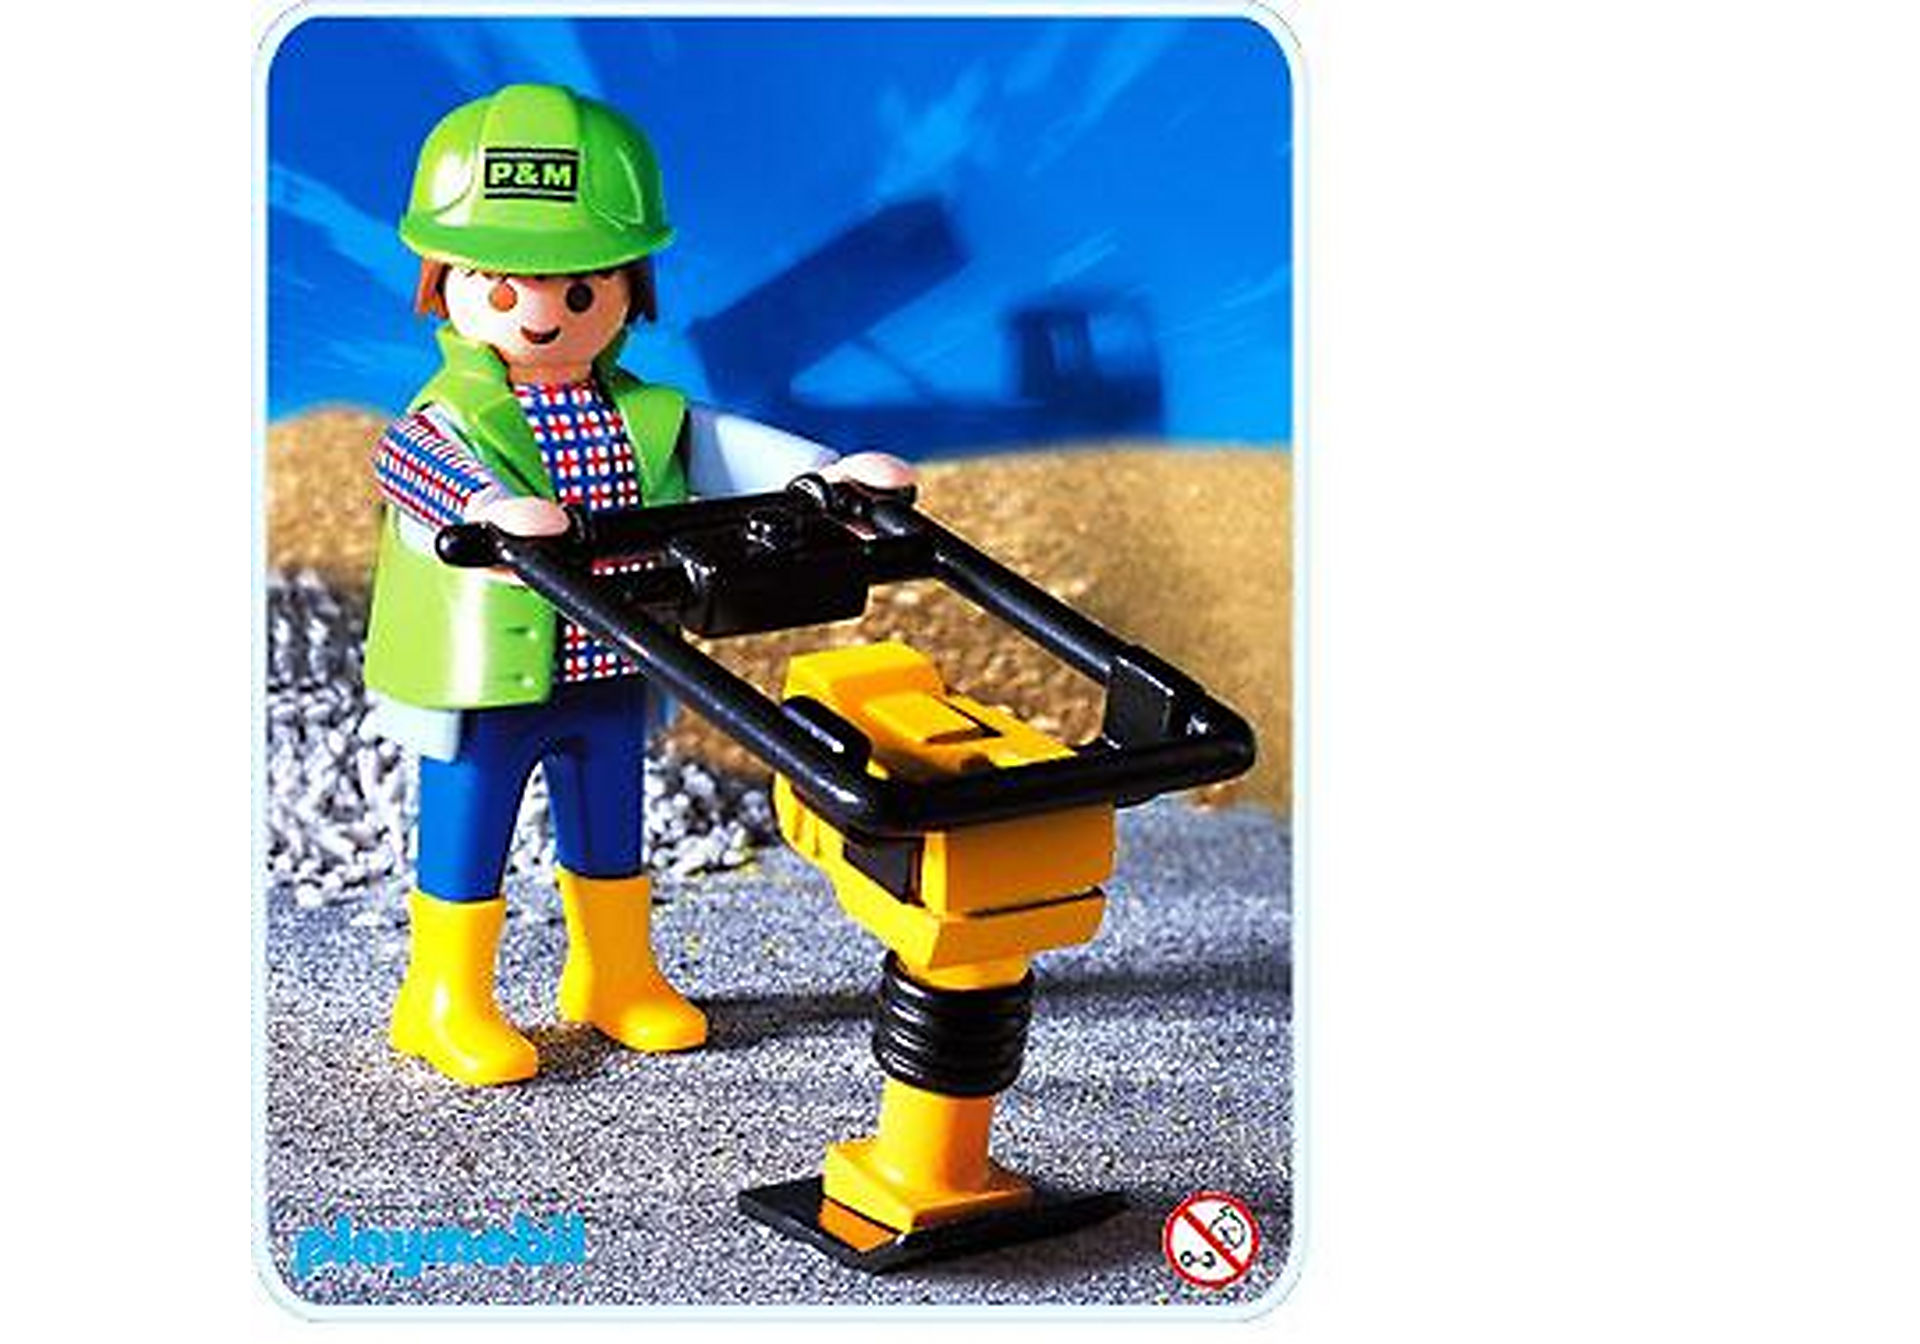 http://media.playmobil.com/i/playmobil/3271-C_product_detail/Ouvrier/Dameuse